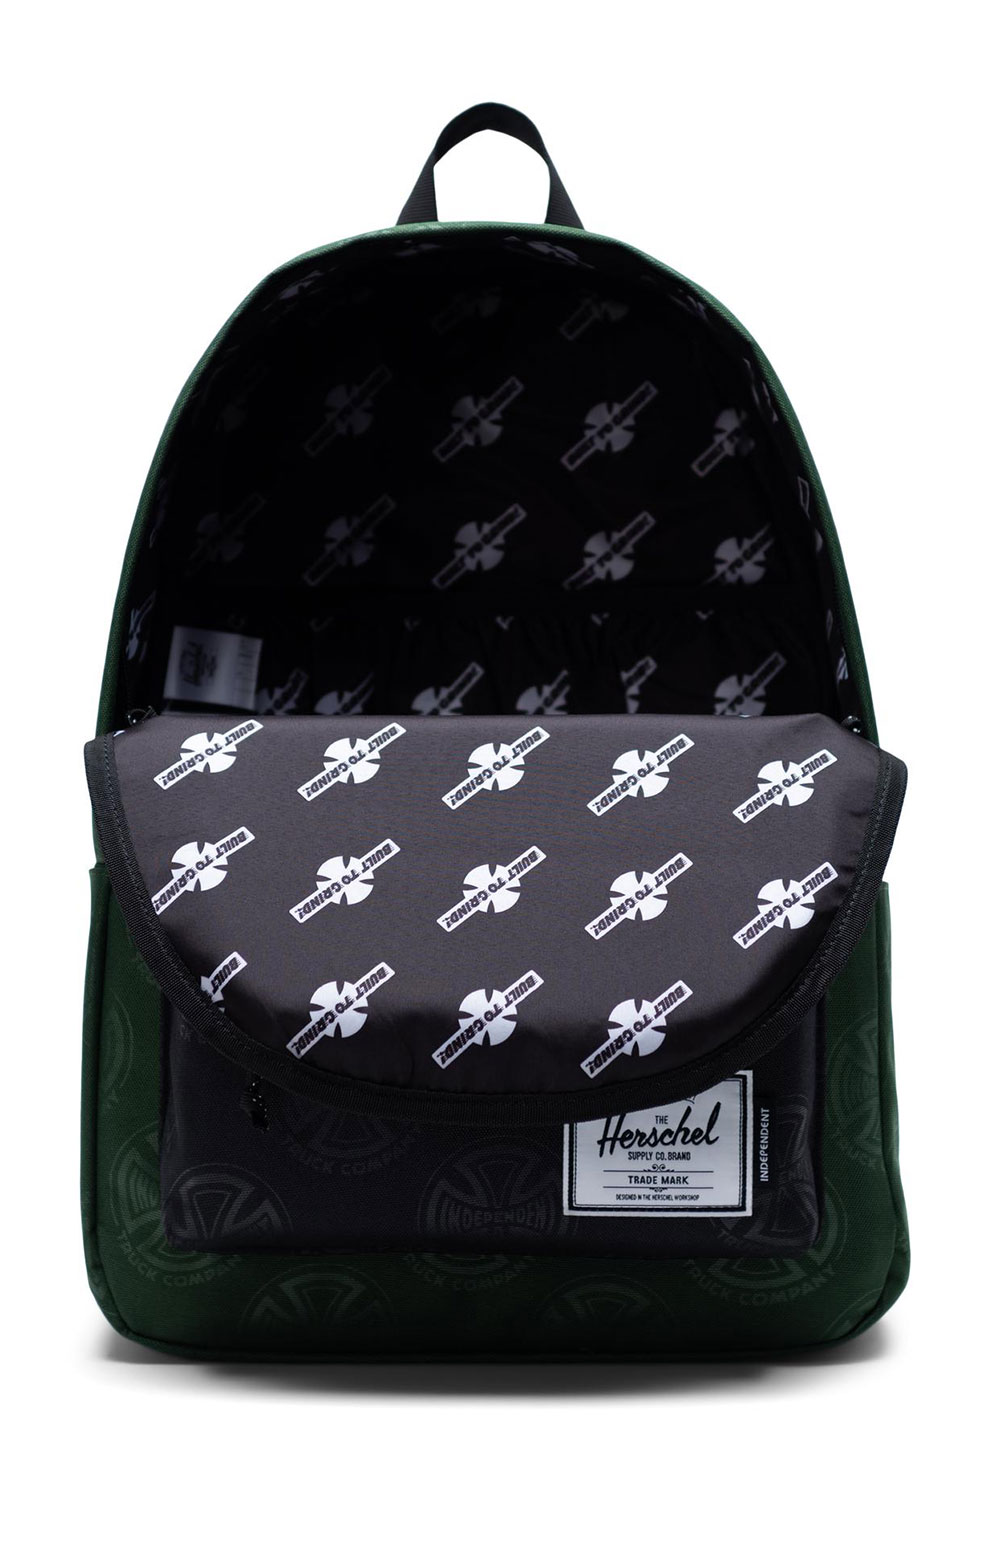 Classic XL Backpack - Independent Multi Greener Pastures  2